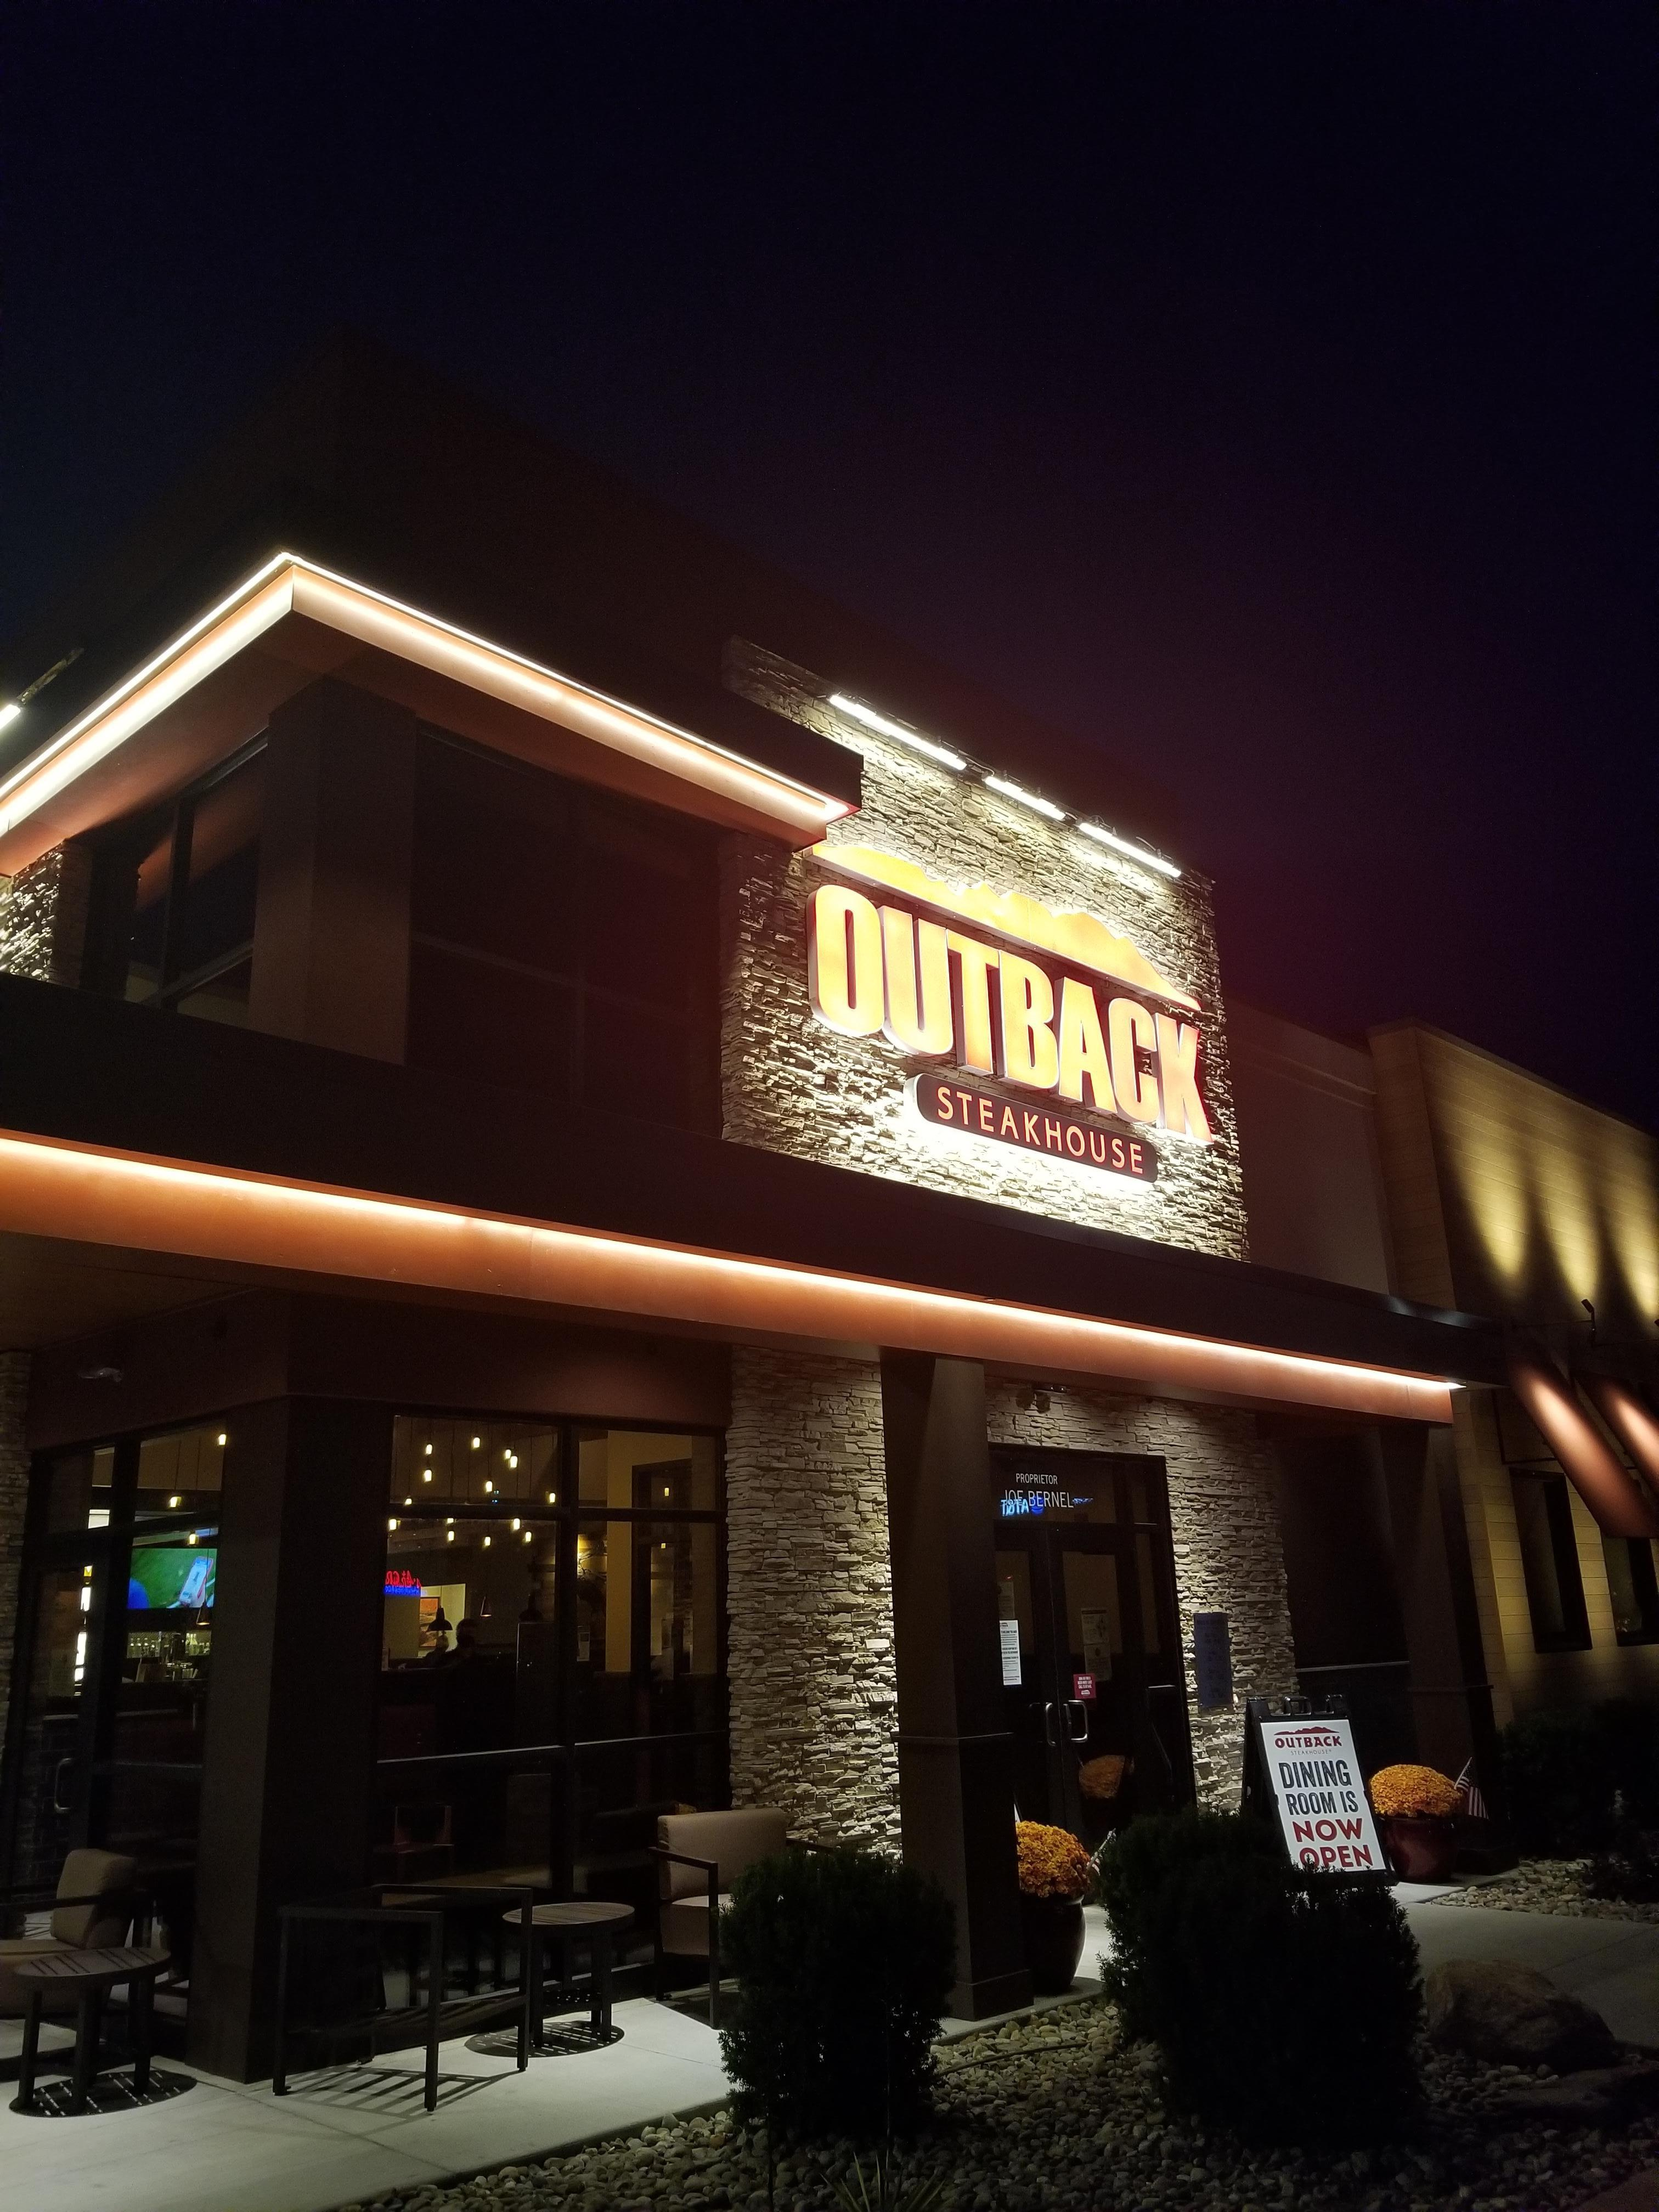 outback steakhouse 725 howe ave cuyahoga falls oh 44221 yp com outback steakhouse 725 howe ave